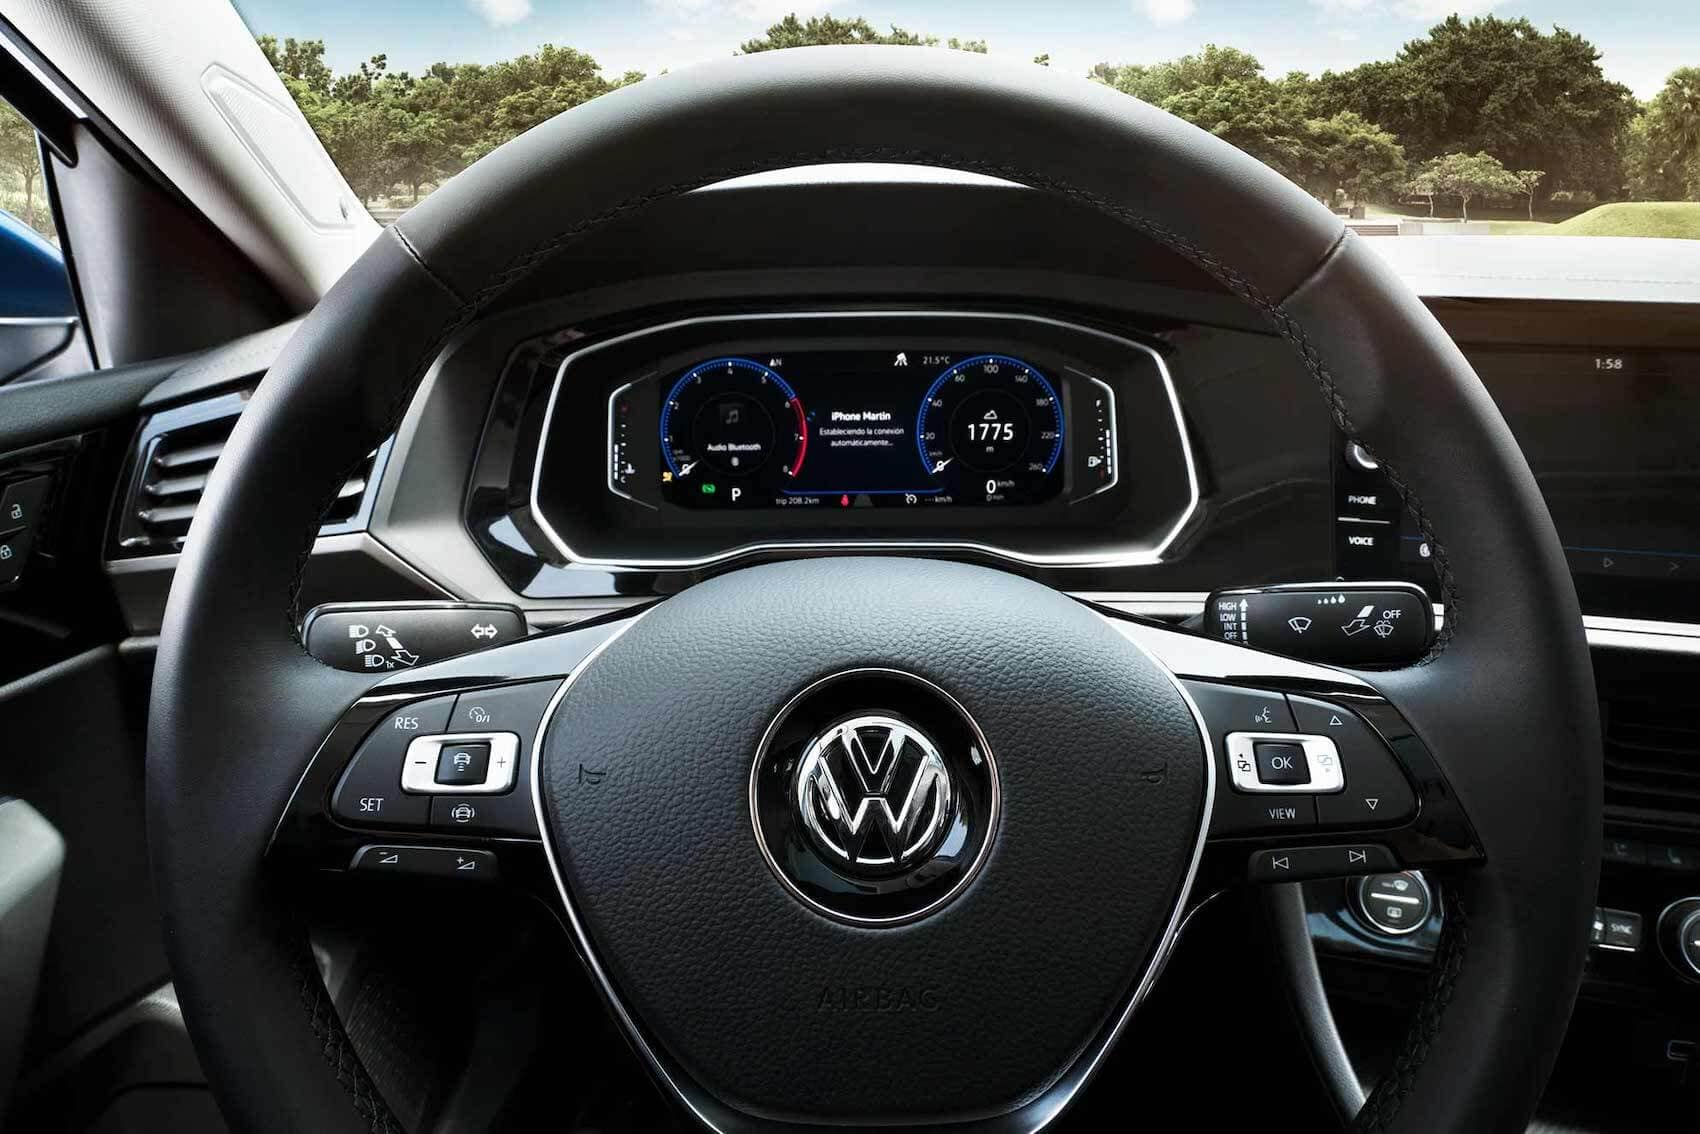 Safety and Technology Inside Both Models